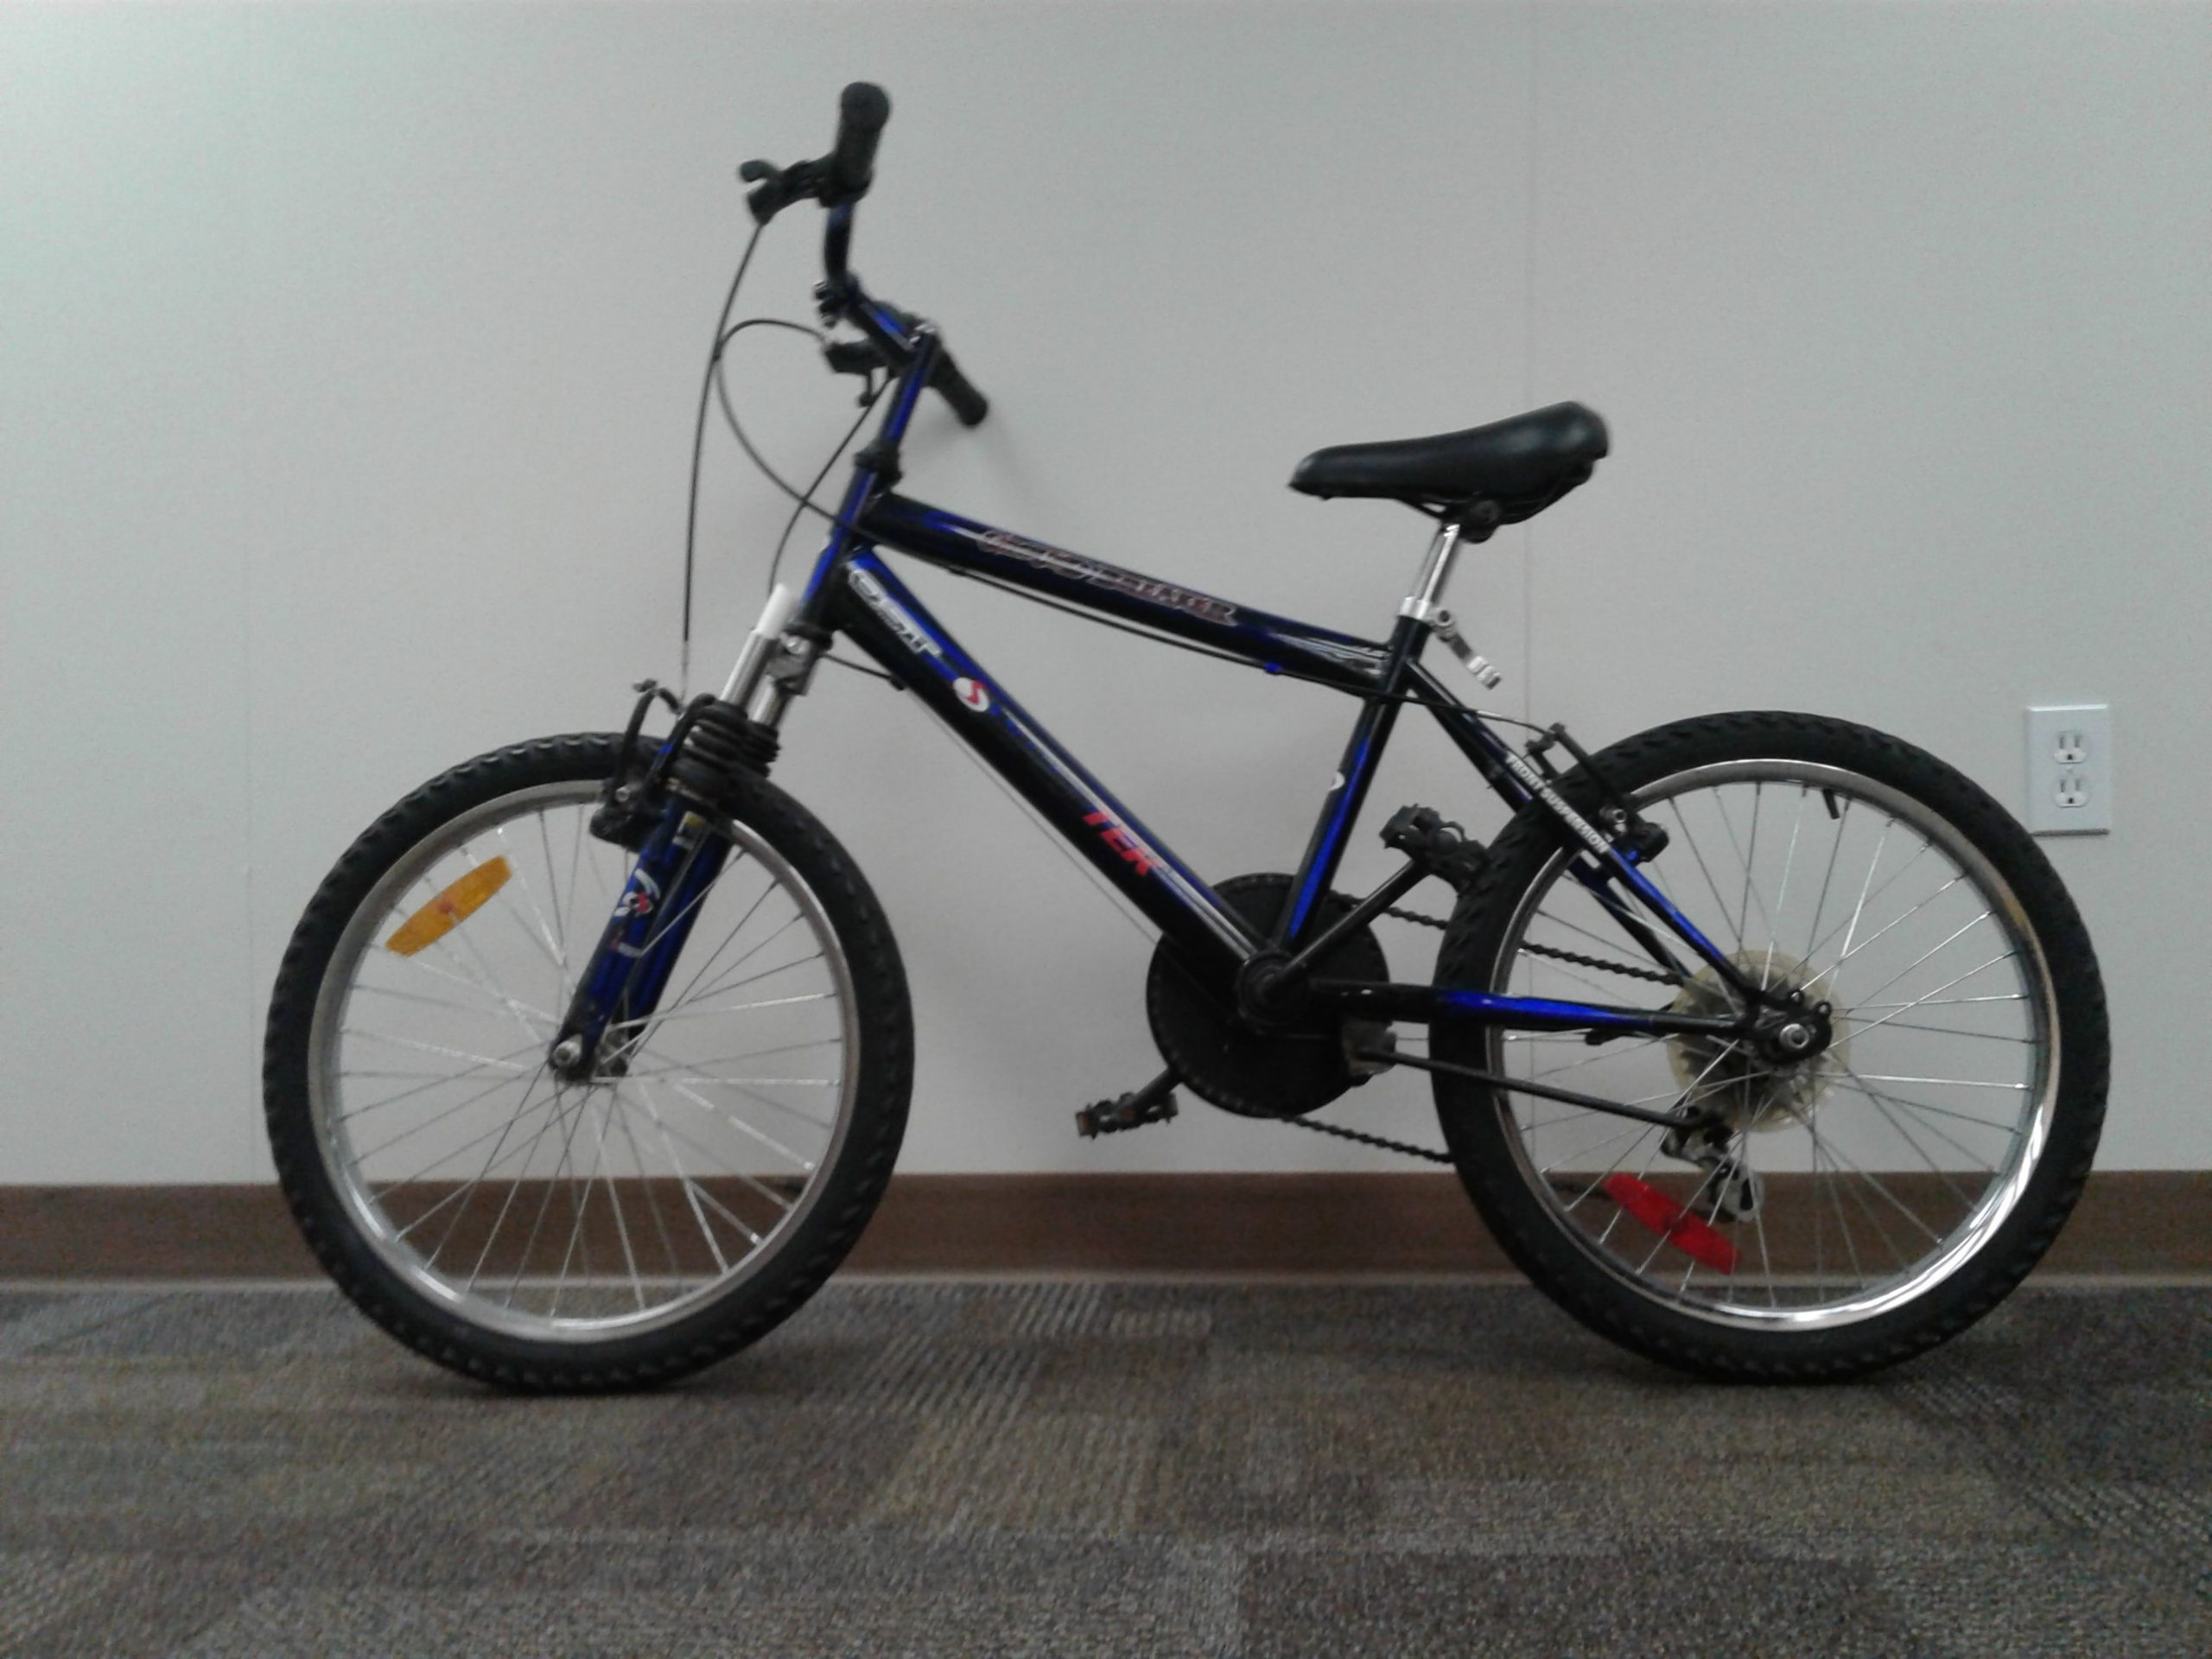 Kids Bike Found Abandoned Nanaimo District Crime Stoppers Tvs sport is a commuter bike available at a starting price of rs. nanaimo crime stoppers